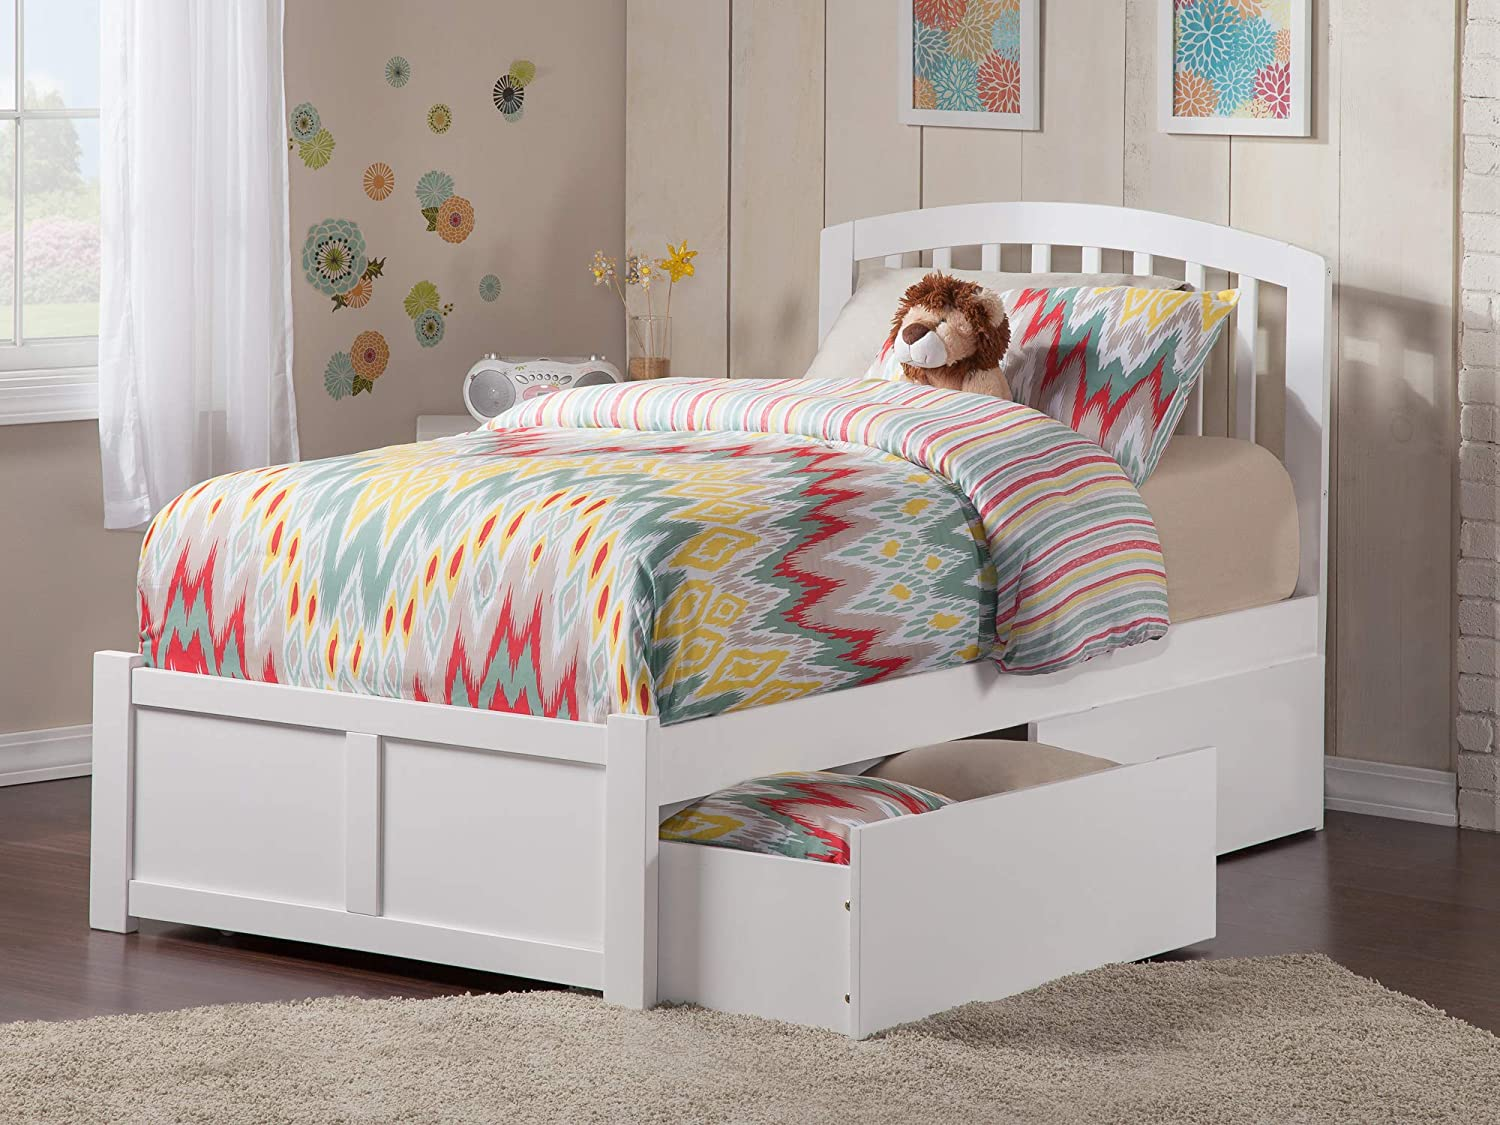 Amazon.com: Atlantic Furniture AR8822112 Bed Twin White: Kitchen & Dining